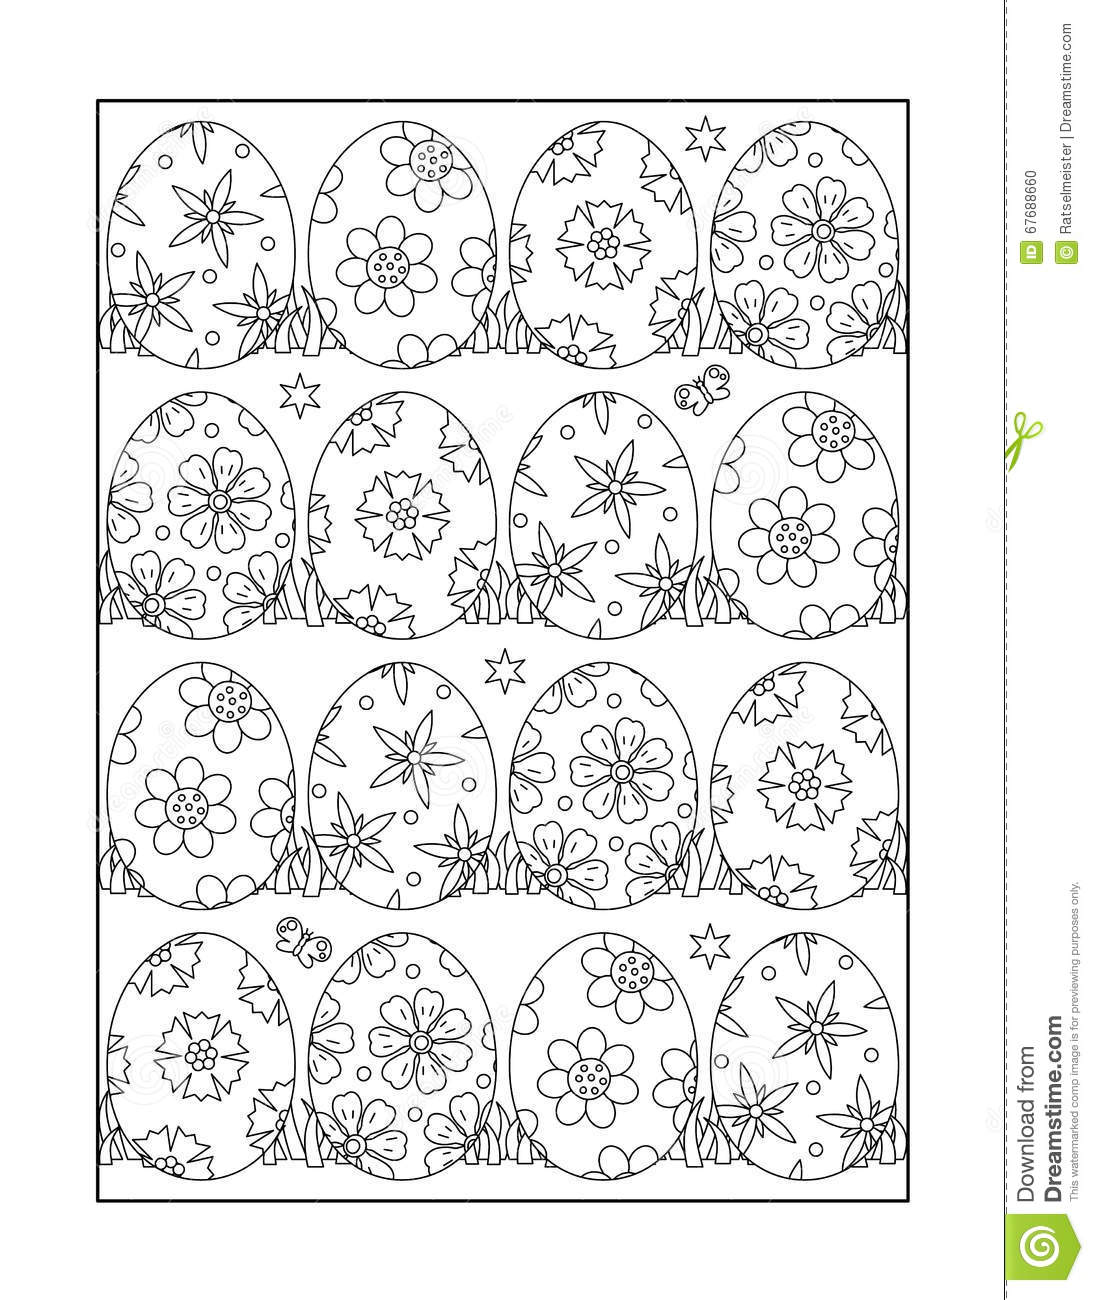 Coloring Page For Adults And Children Or Black And White